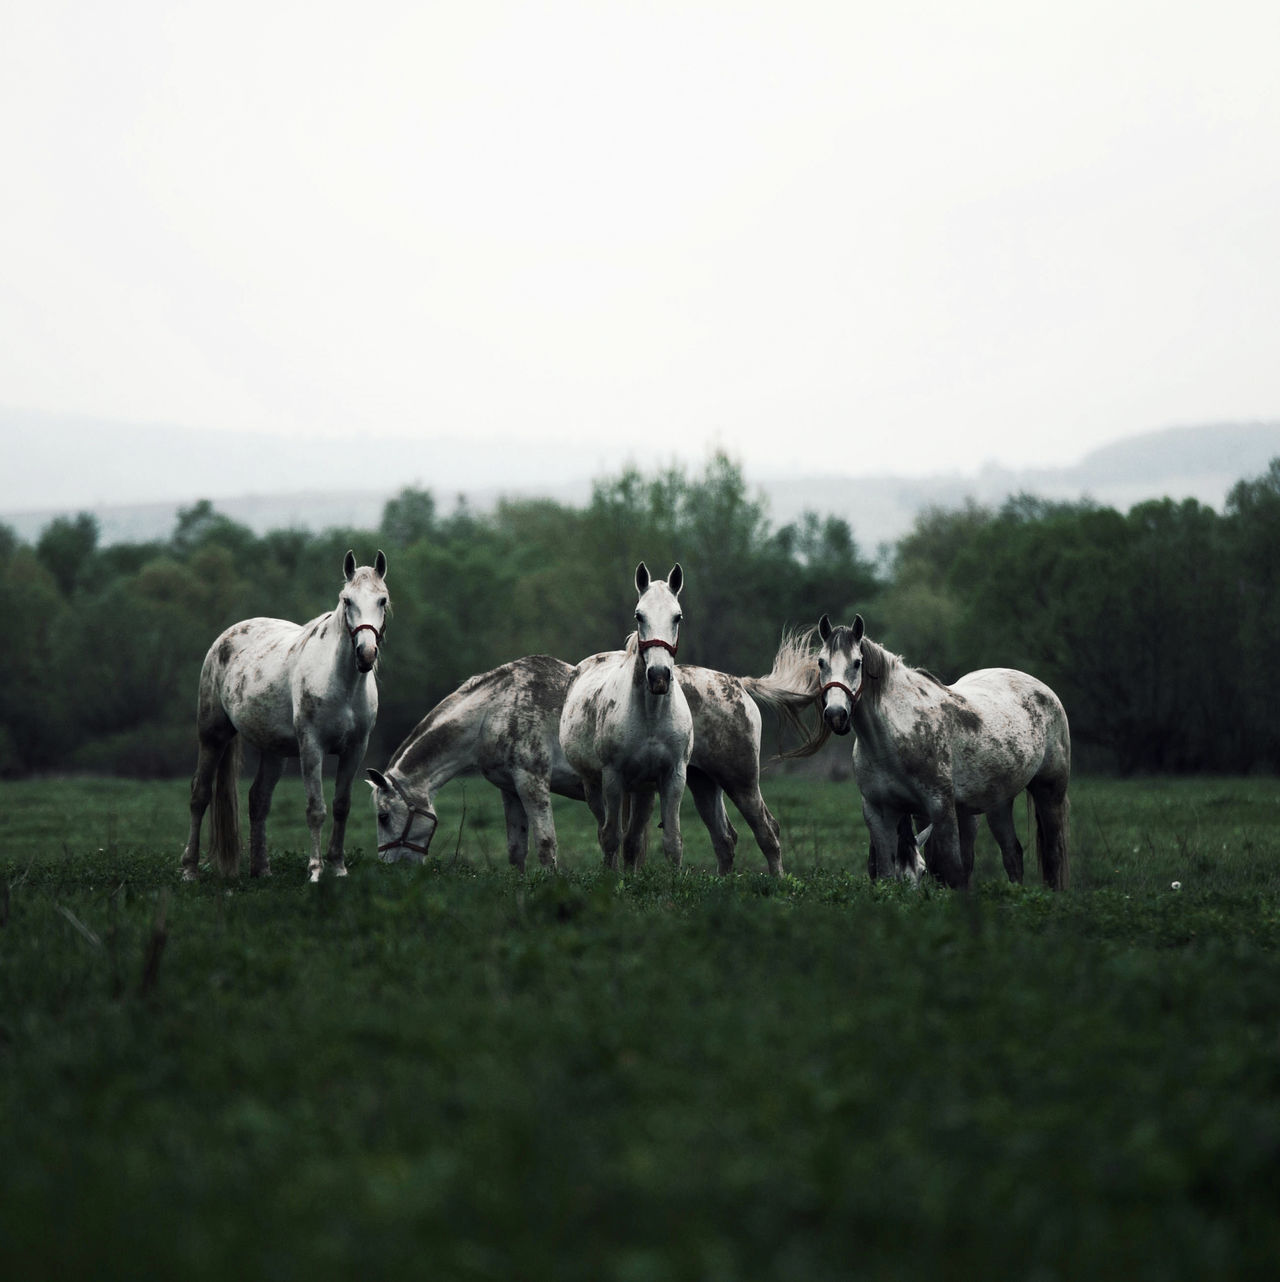 Animal Animal Themes Animal Wildlife Animals Animals In The Wild Day Domestic Animals Field Grass Green Color Horse Horses Landscape Livestock Mammal Nature Nature Nature Photography Nature_collection Naturelovers No People Outdoors Sky Tree White